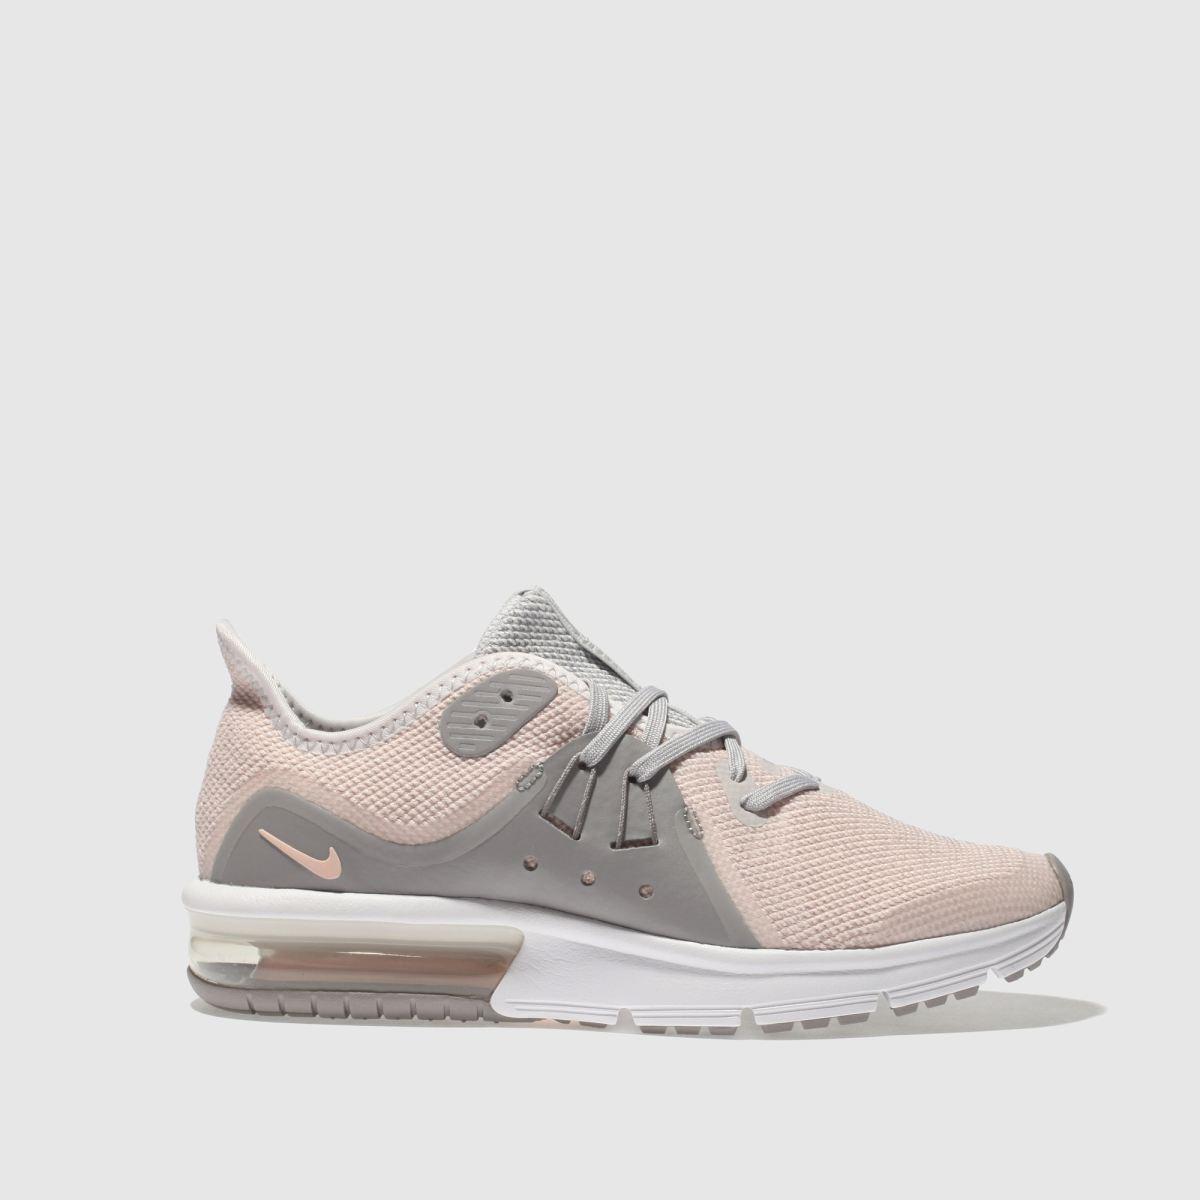 Nike Peach Air Max Sequent 3 Girls Youth Youth